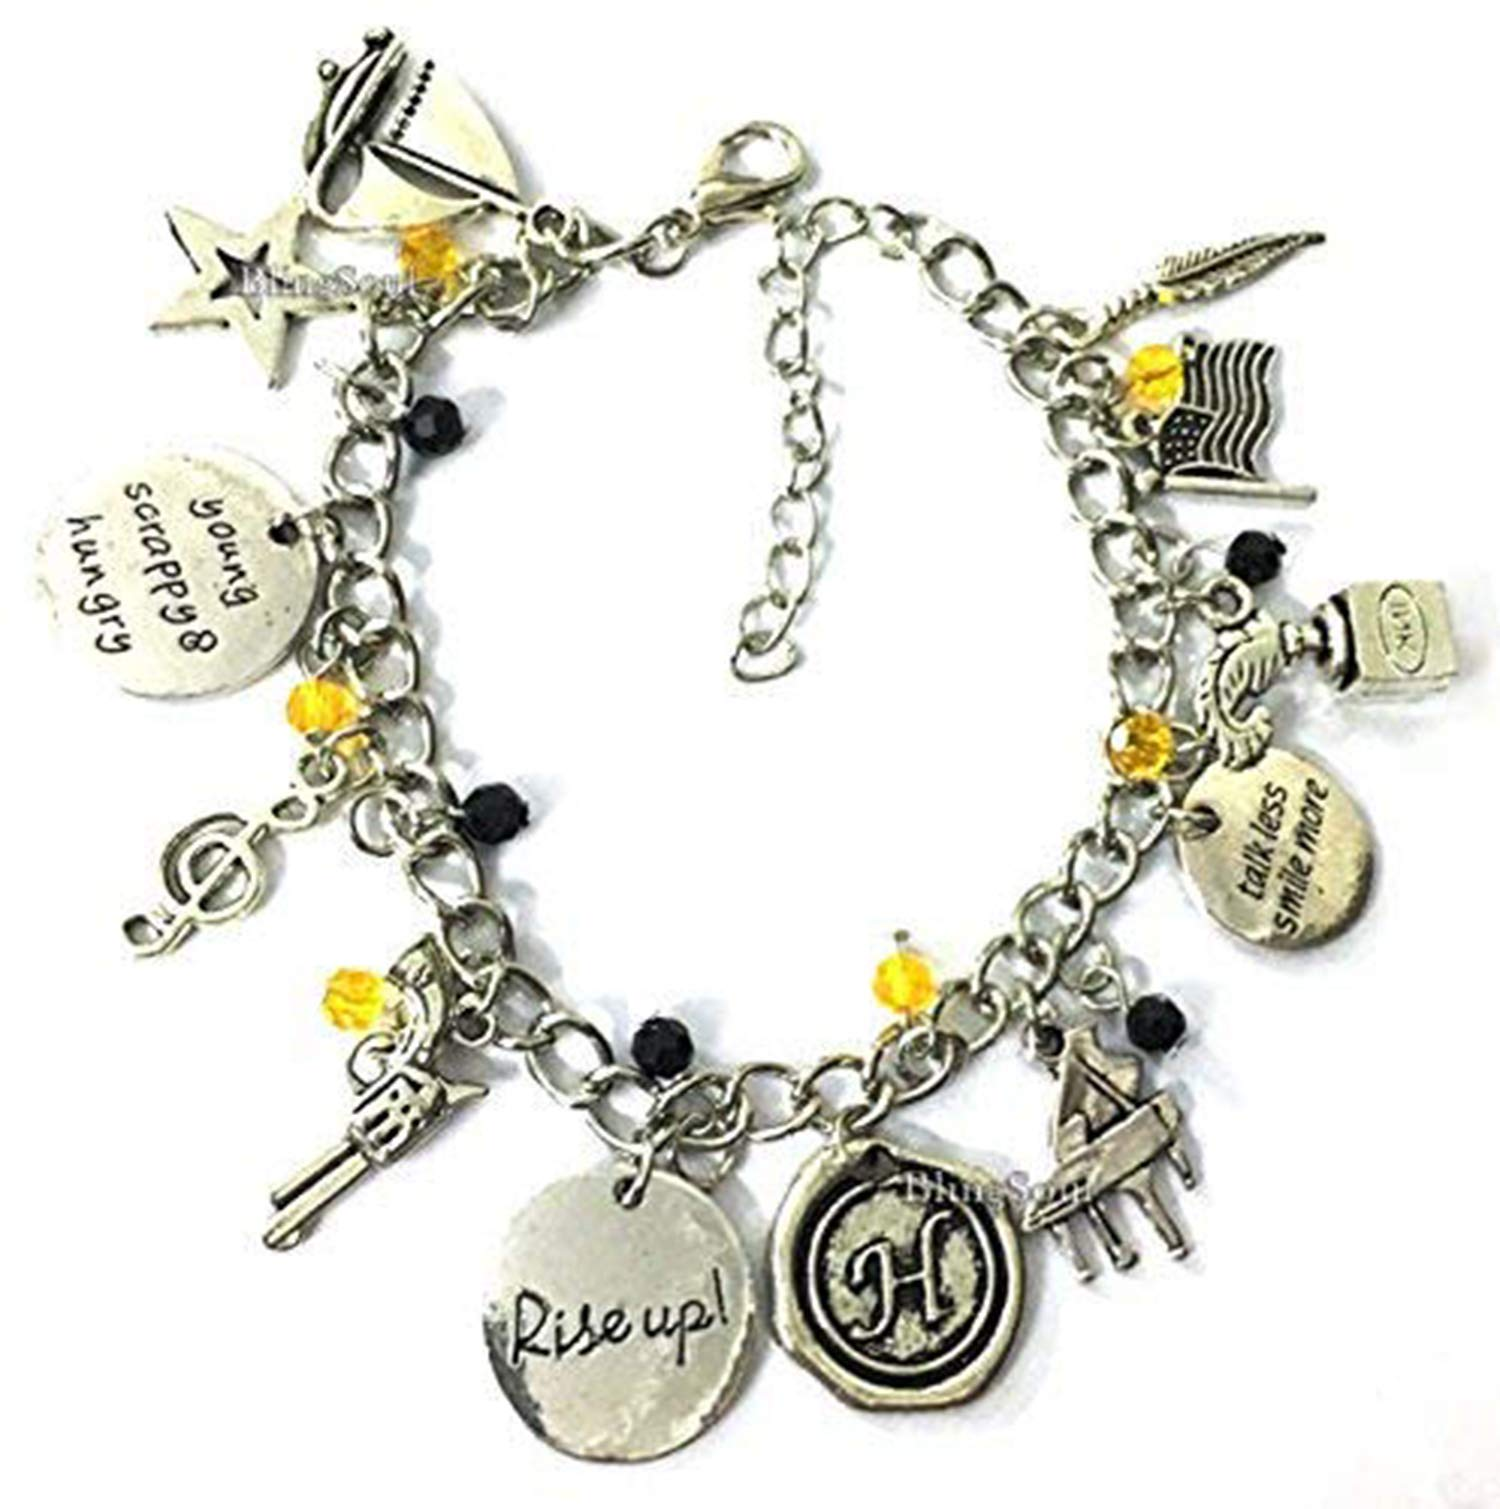 Hamilton Broadway Alexander Musical Jewelry - Disney Jewelry Merchandise Gifts Collection ⚡️Flash Sale⚡️ by BlingSoul (Image #1)